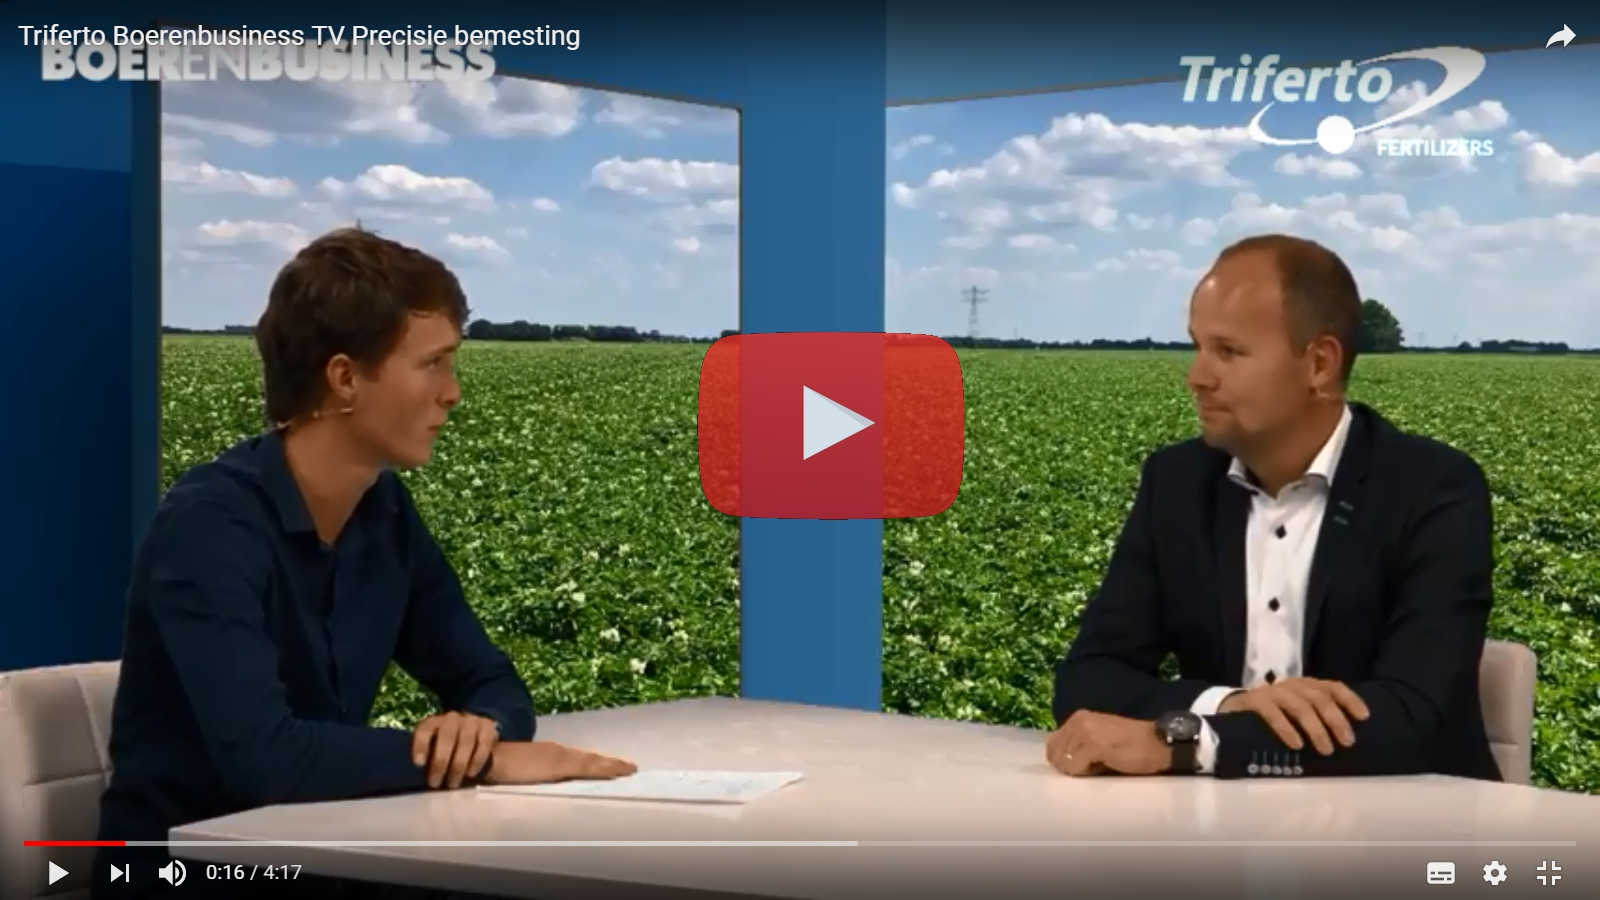 Boerenbusiness TV: Triferto over precisiebemesting